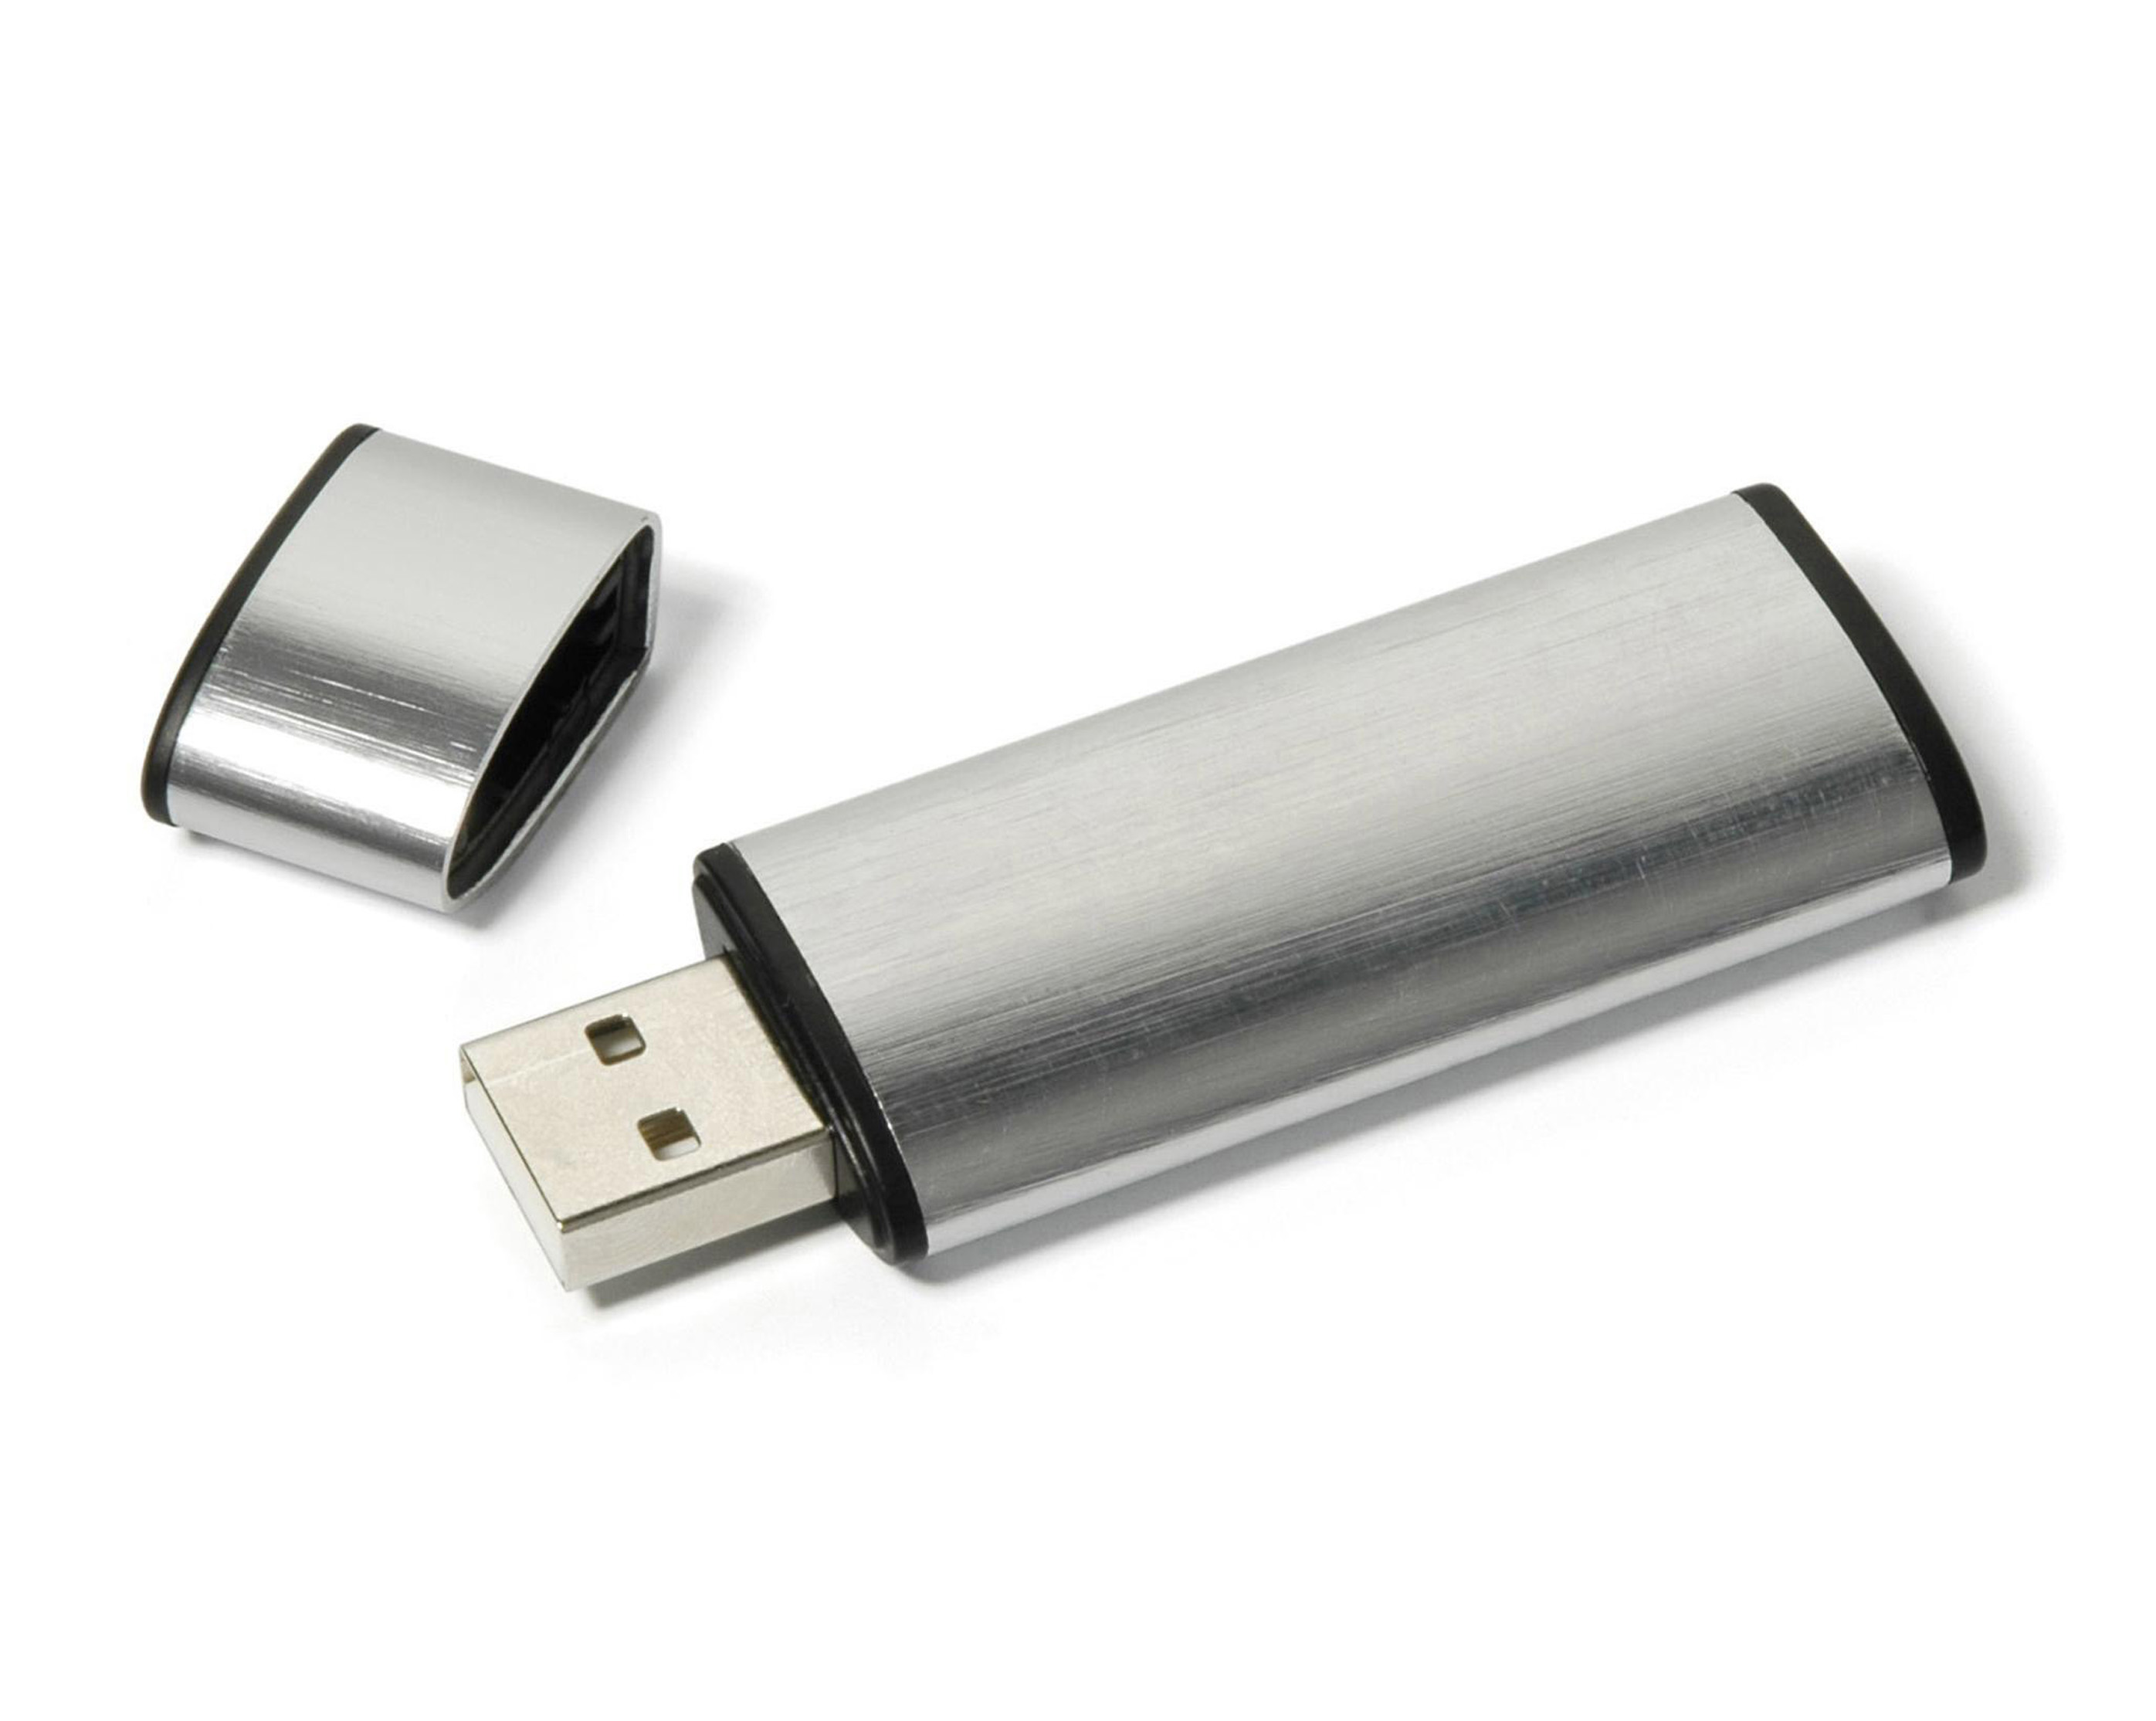 Wedge USB FlashDrive